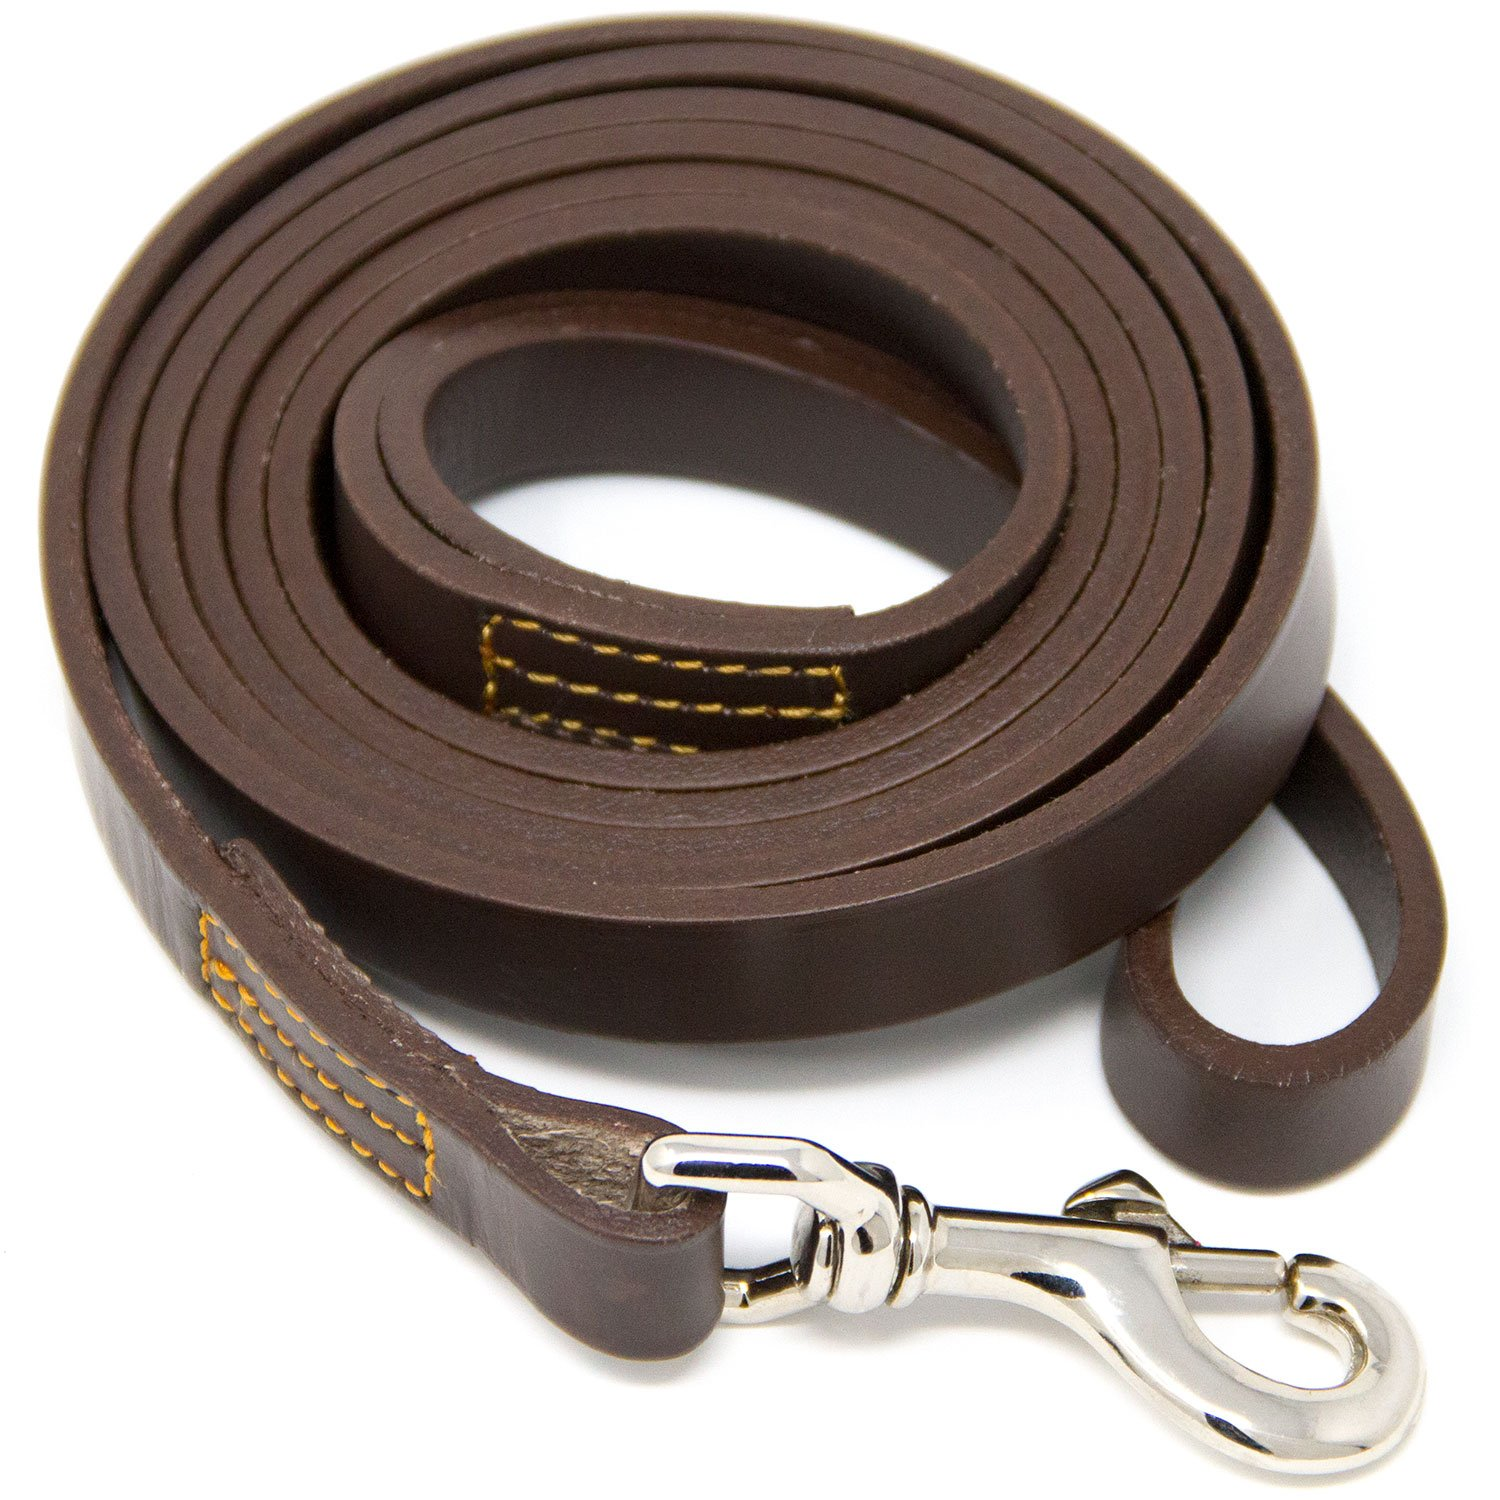 Hero Leather Genuine Full Grain Leather Training Leash - 6 Foot (Brown) by Hero Leather